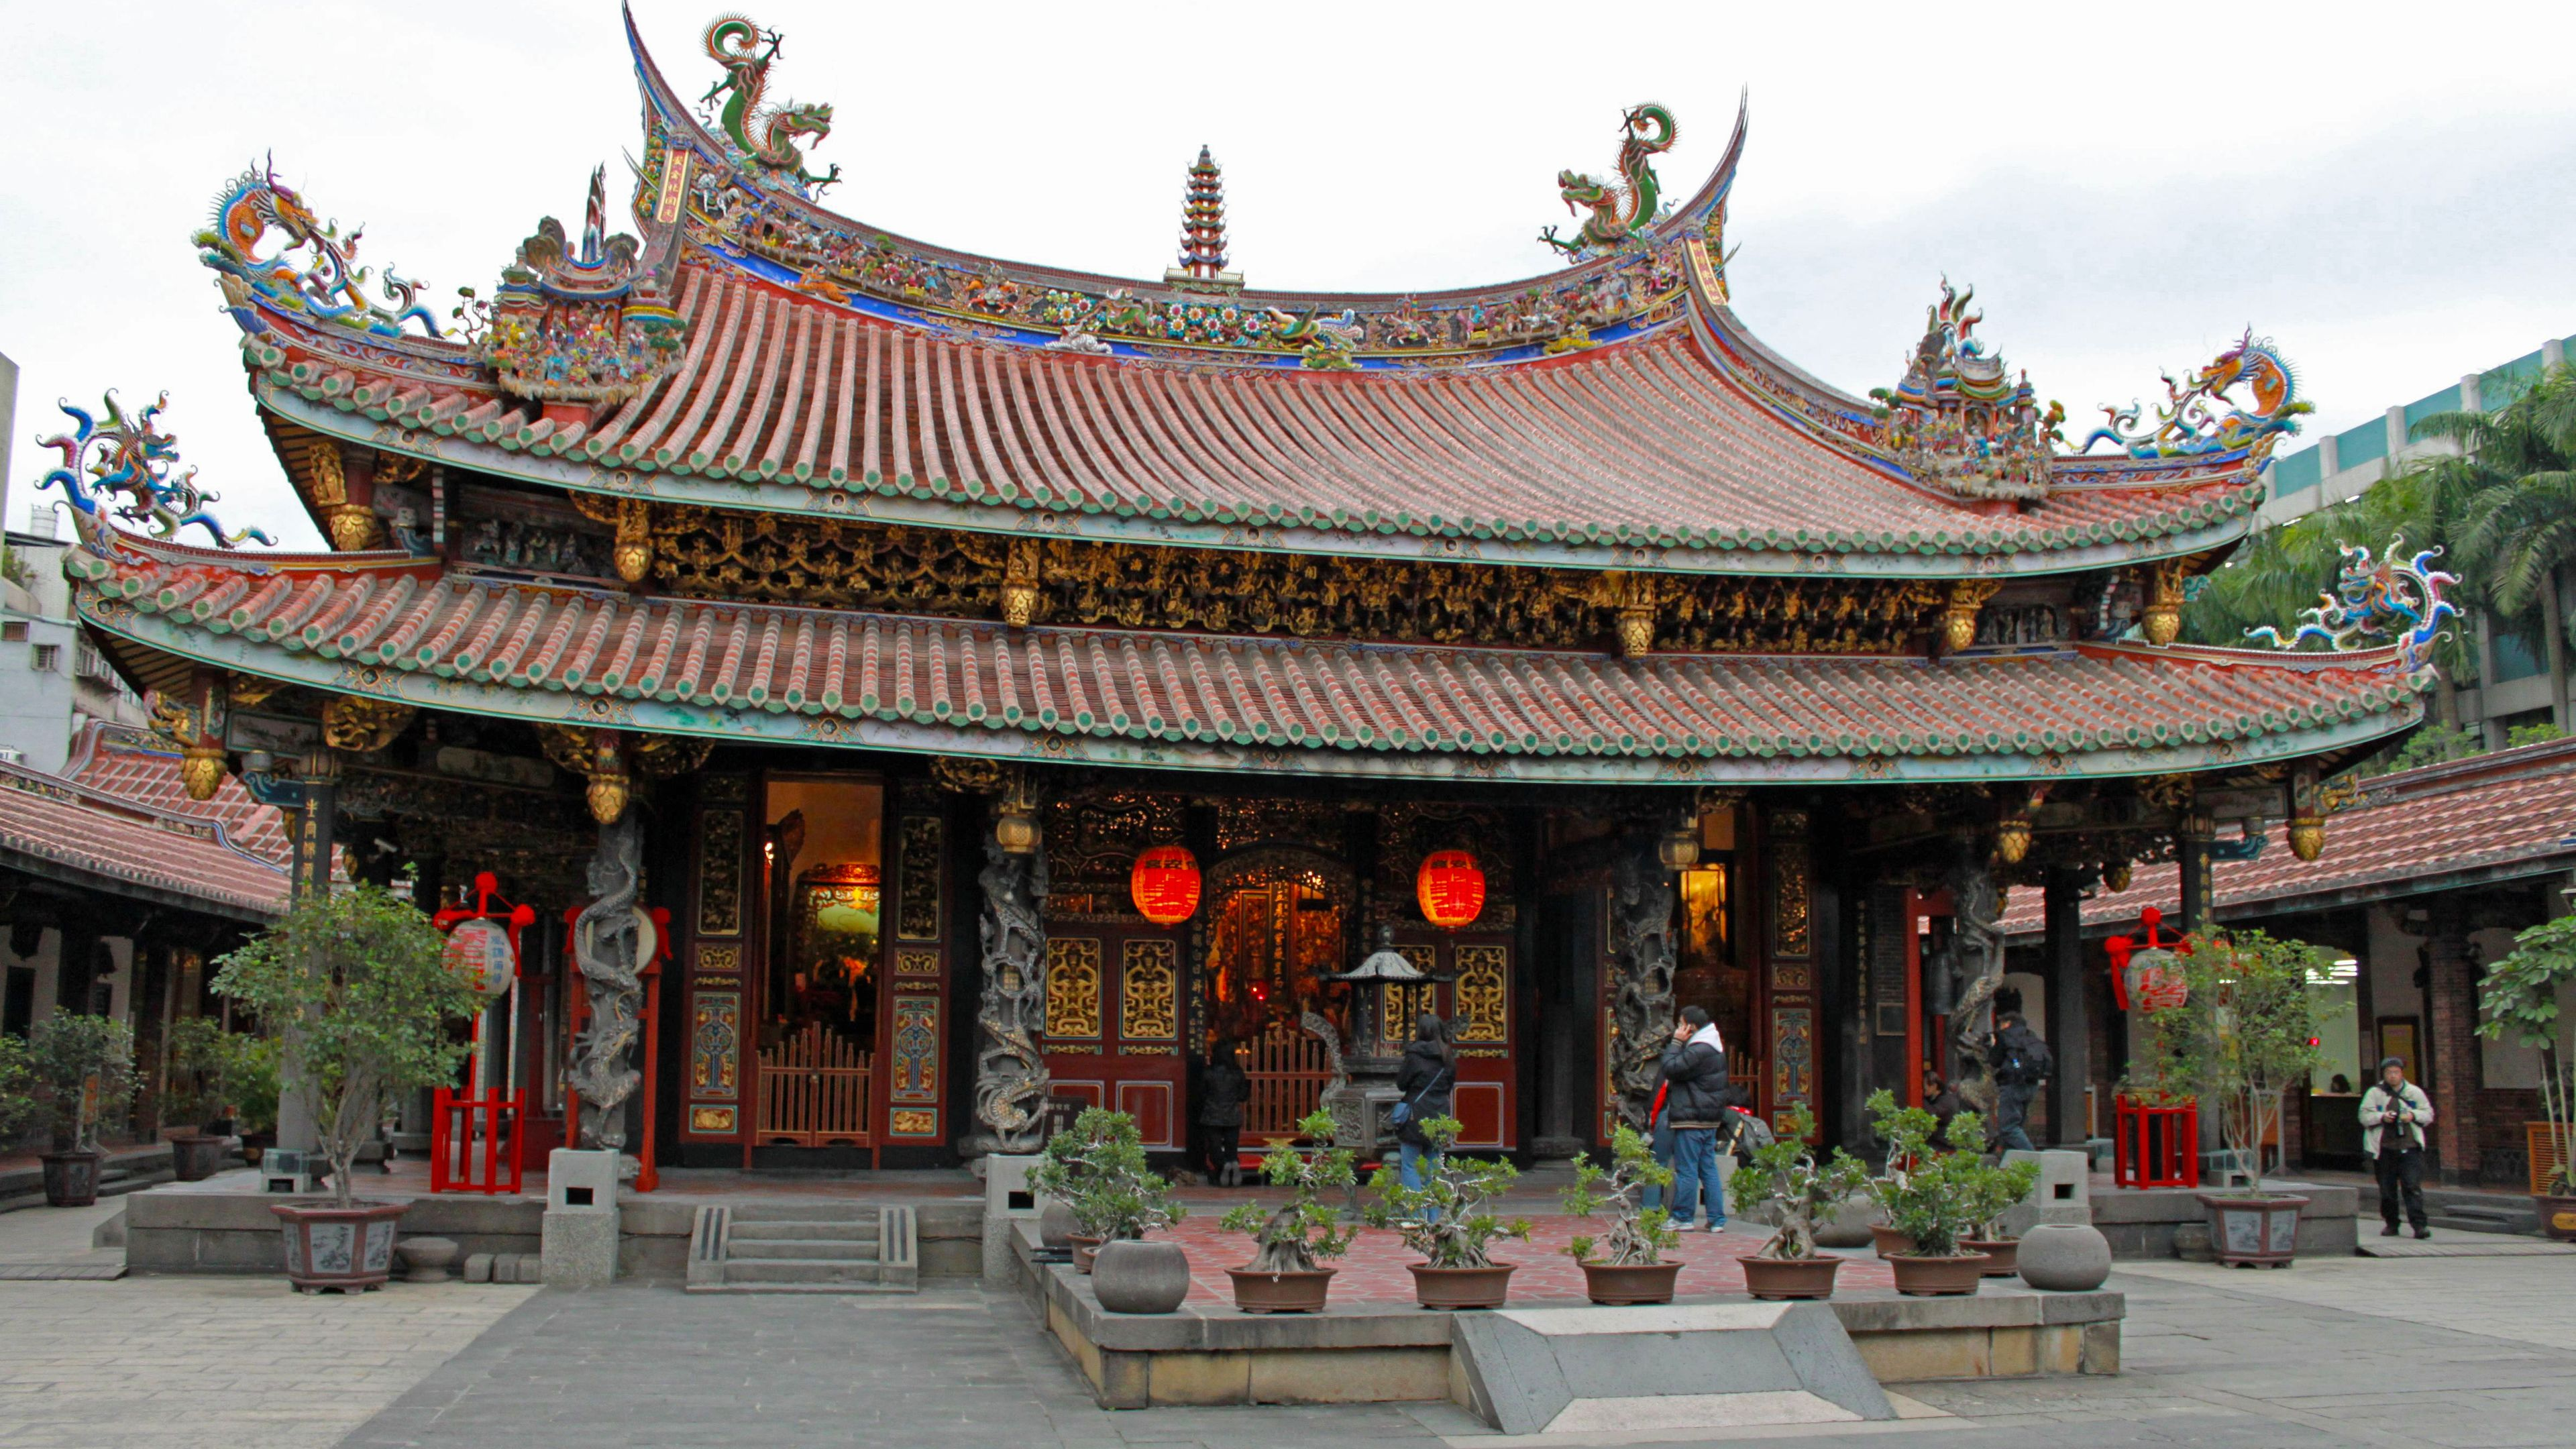 temple viewed from front